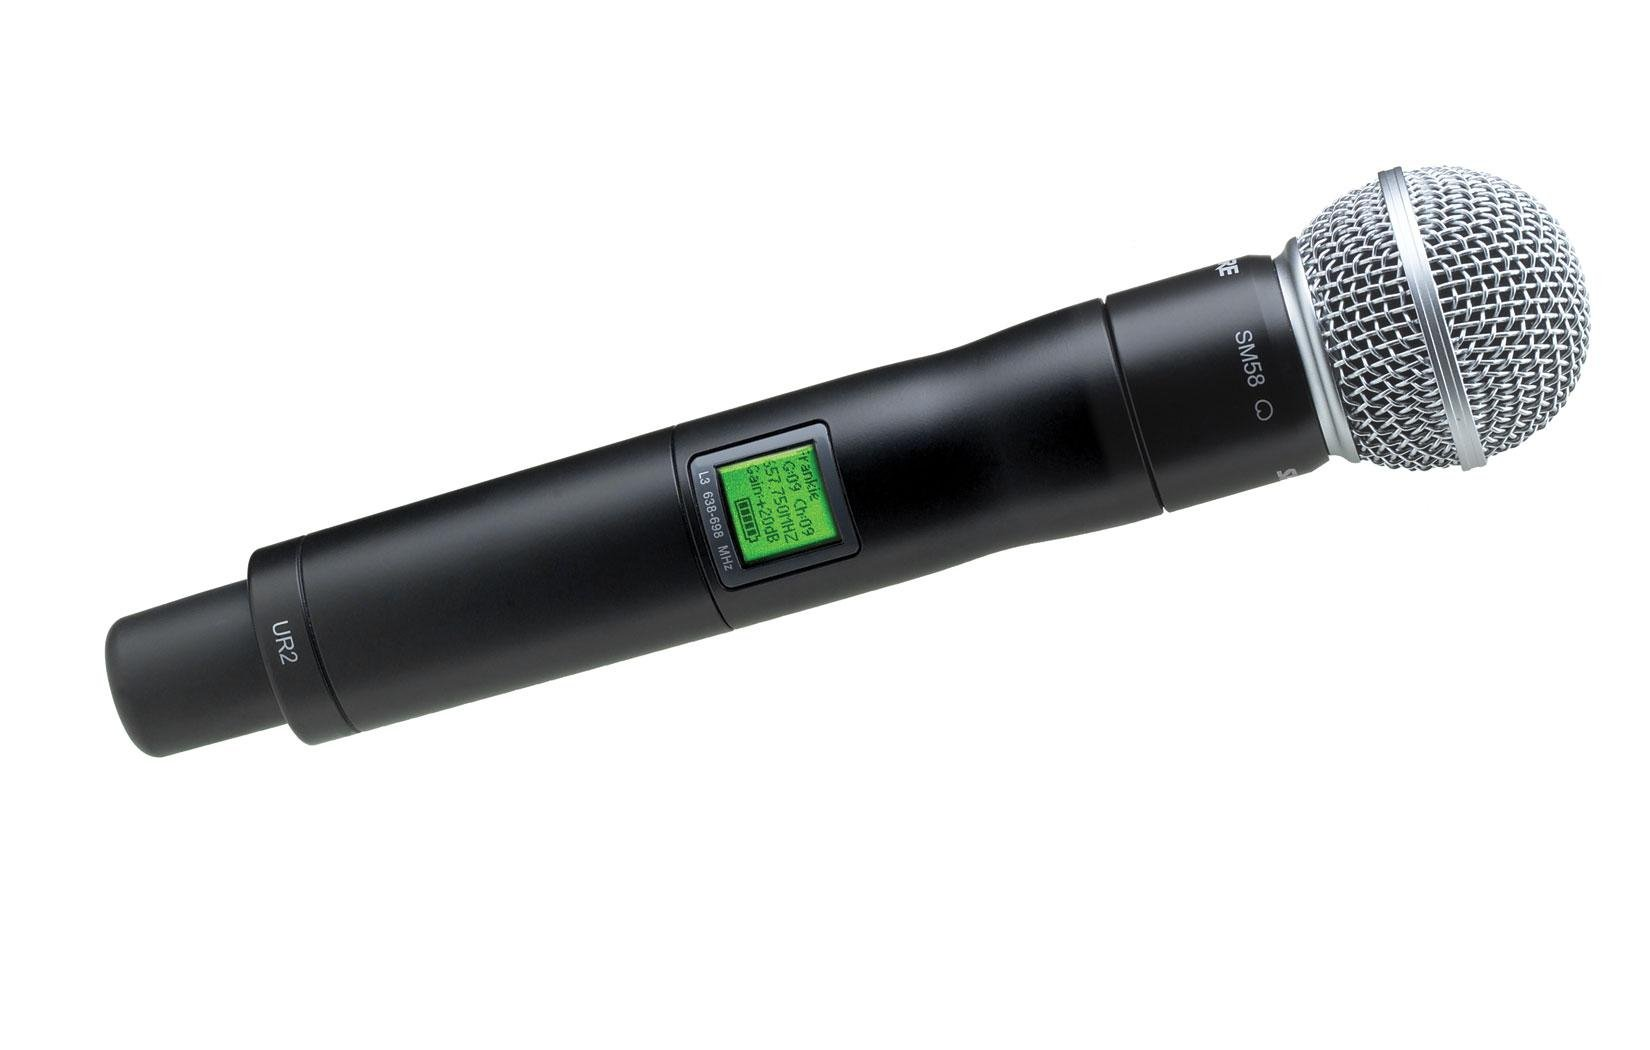 SM58 Handheld Transmitter for the UHF-R Wireless System